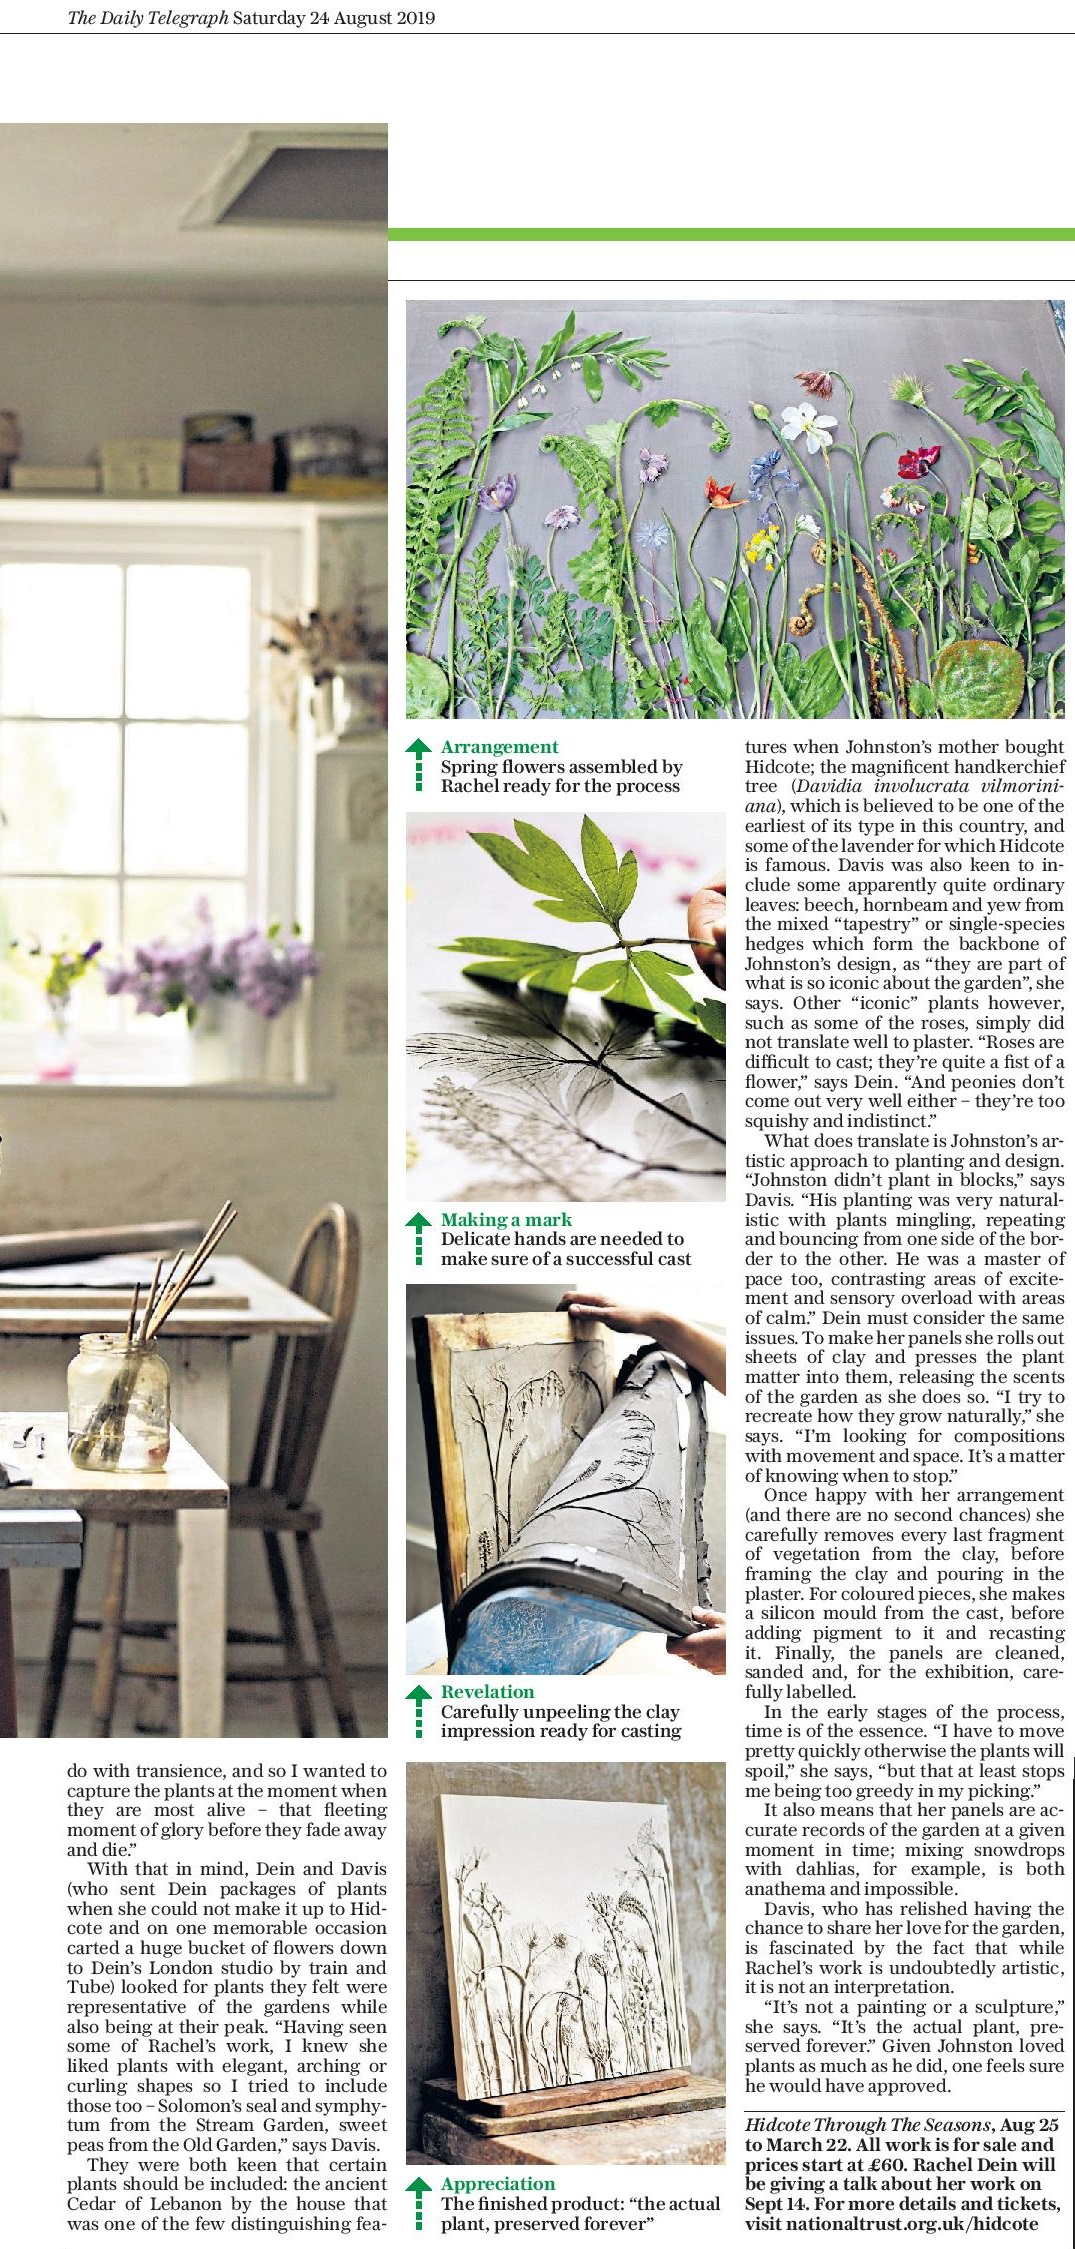 Daily Telegraph_24-08-2019_Weekend_1st_p15-page-001.jpg